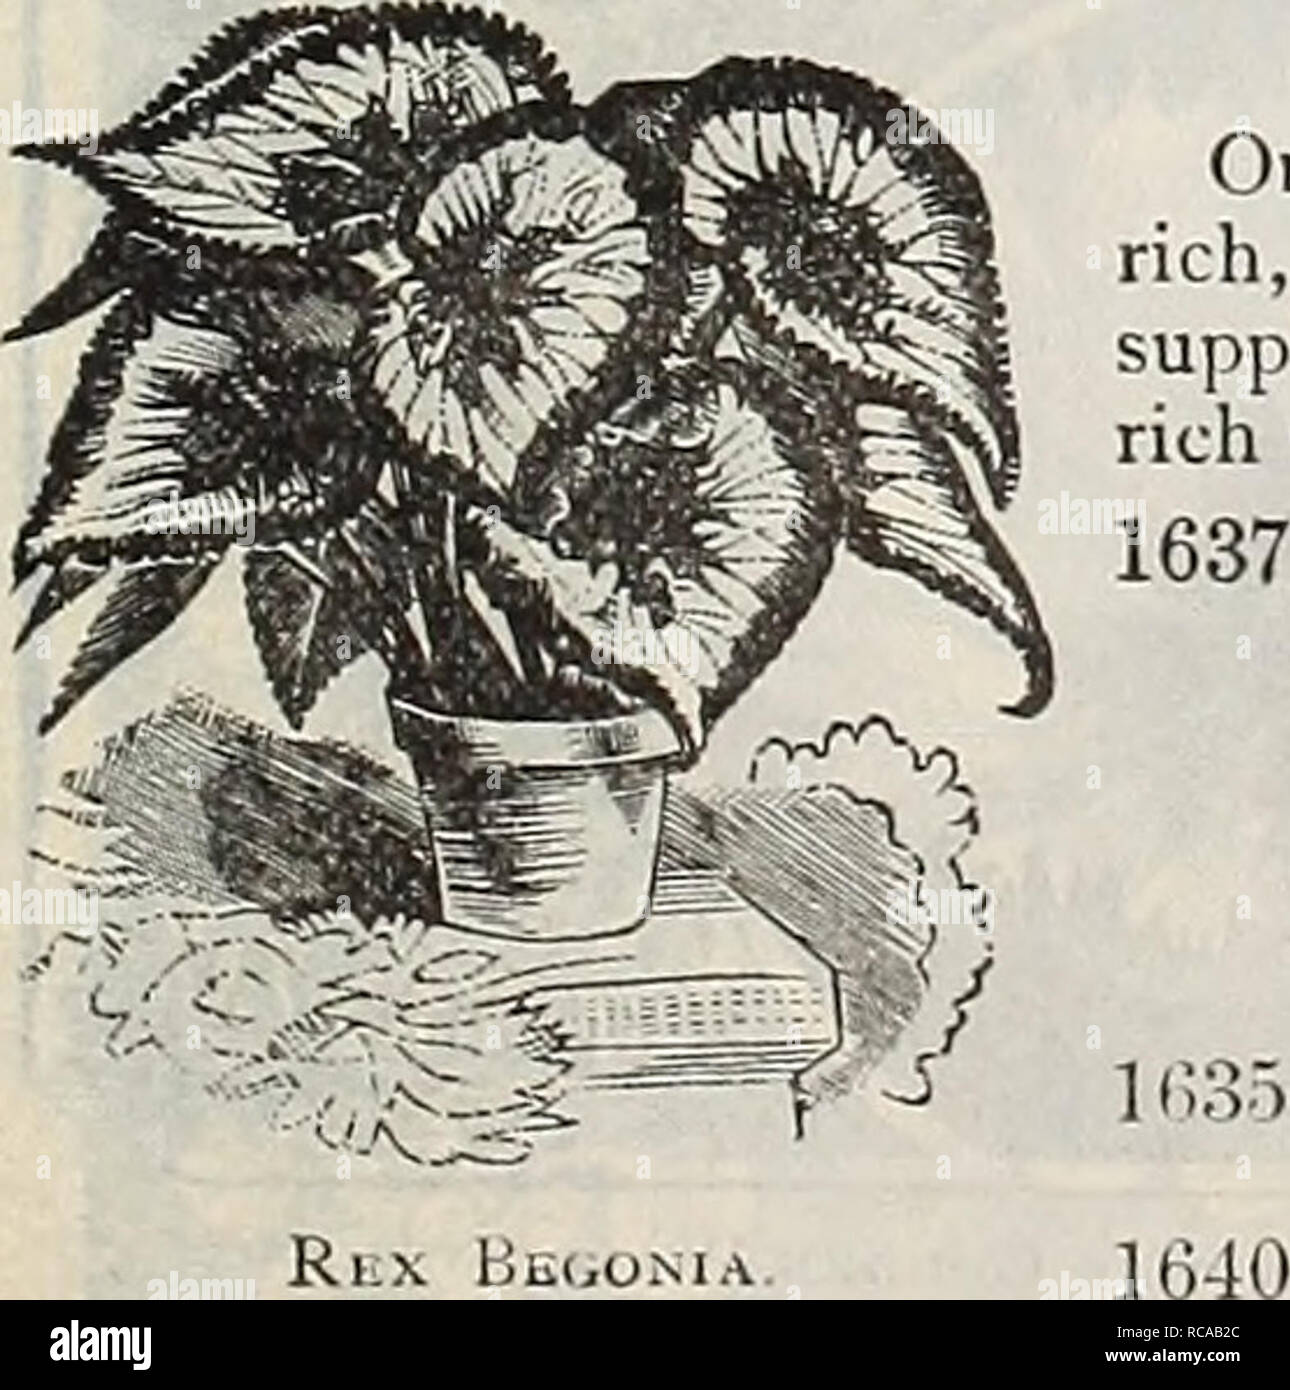 . Dreer's 1901 garden calendar. Seeds Catalogs; Nursery stock Catalogs; Gardening Equipment and supplies Catalogs; Flowers Seeds Catalogs; Vegetables Seeds Catalogs; Fruit Seeds Catalogs. BRYONOPSIS. 1641 Laciniosa. A beautiful annu.d climber of the gourd species, with ivy- like pale green foliage and showy fruit, first green striped w hite, turning, when ripe, to brighi scarlet striped white ; 10 feet. (See cut.) Brovvallia Spfxiosa Major. 0LD=FASH10NED FLOWERS. We offer collections of seed of both annual and per- ennial old-fashioned flowers on page 58. For index of Common or English names o - Stock Image